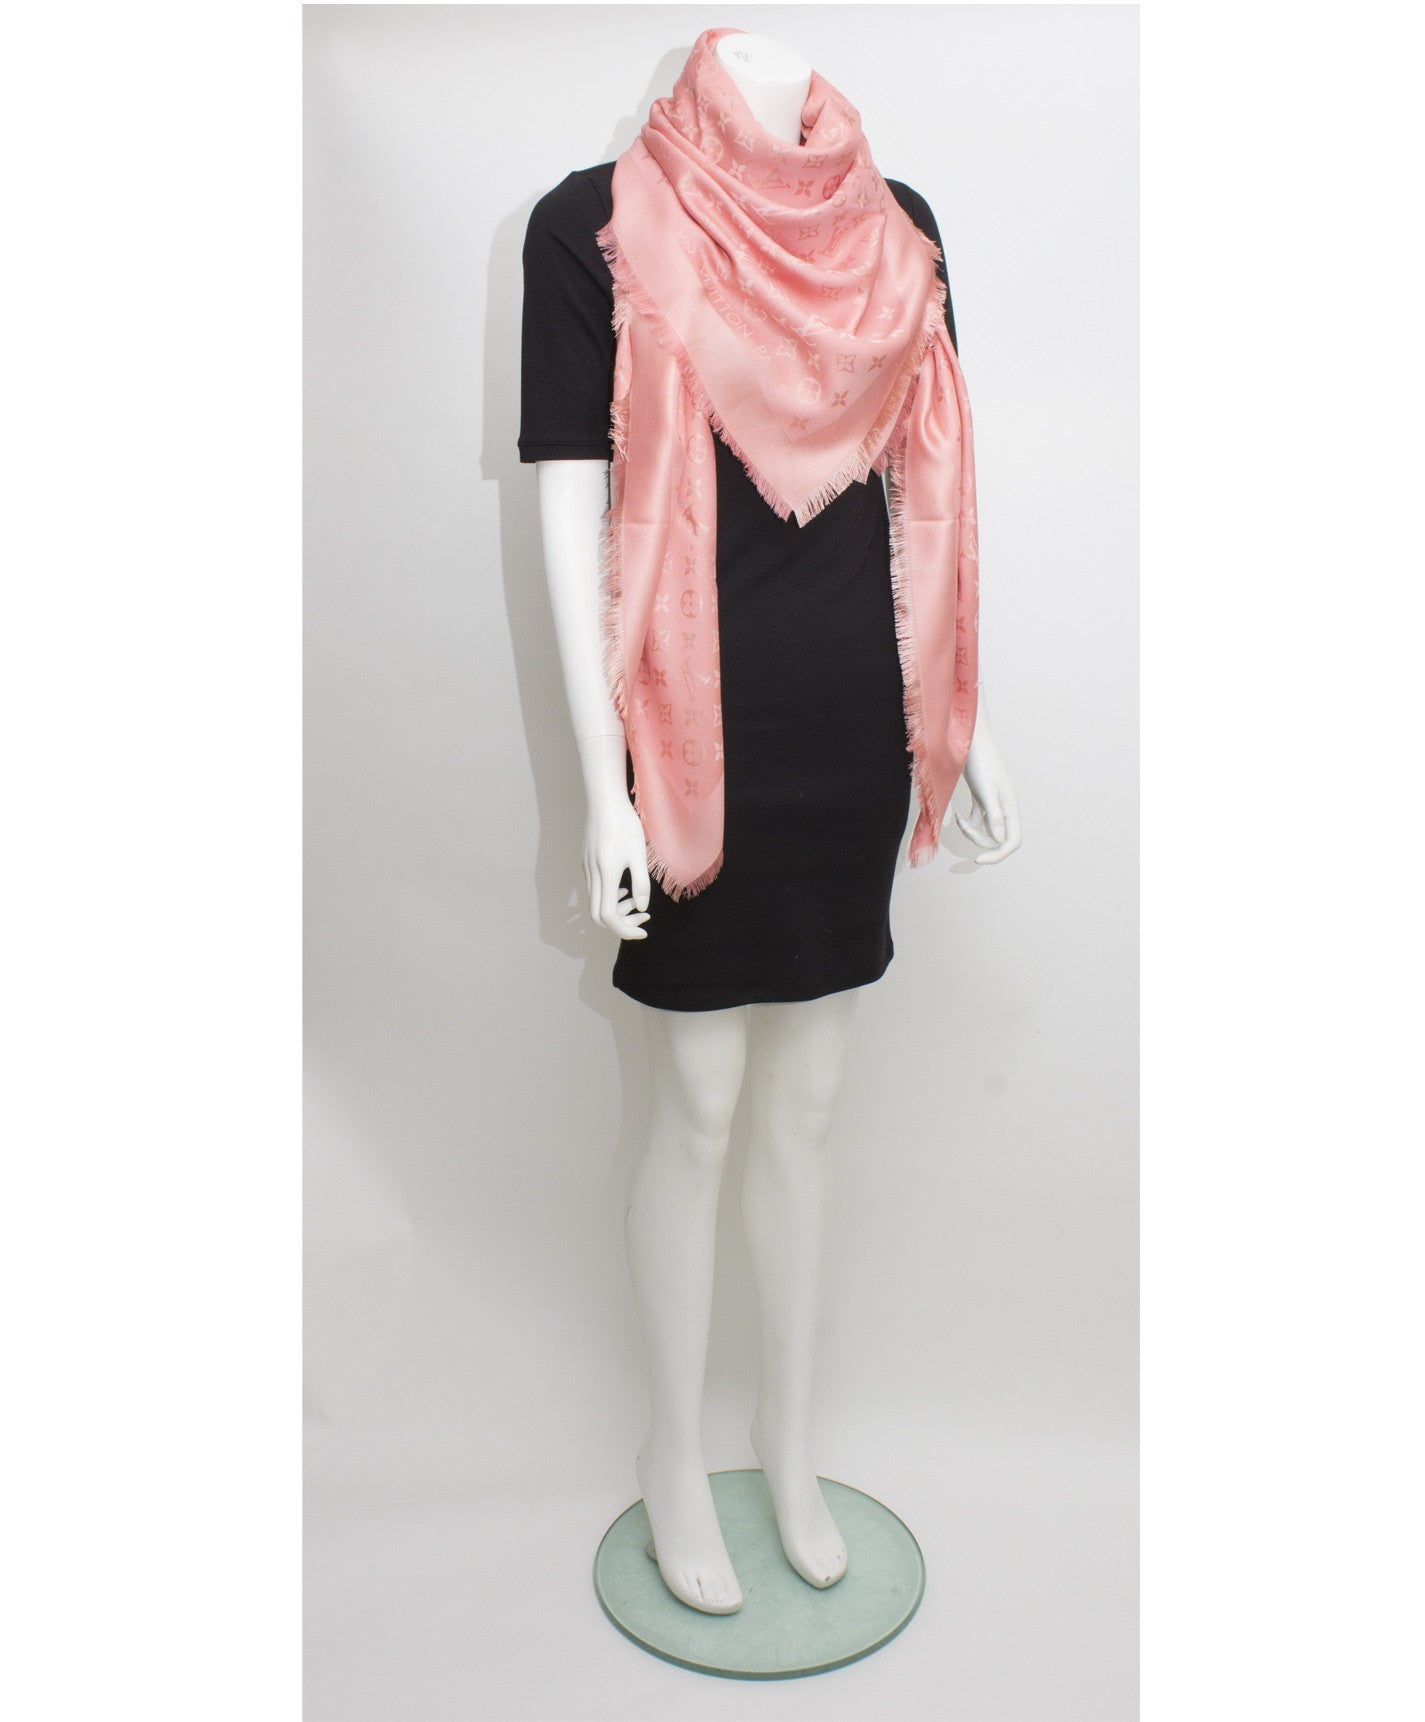 Monogram Peach Shawl